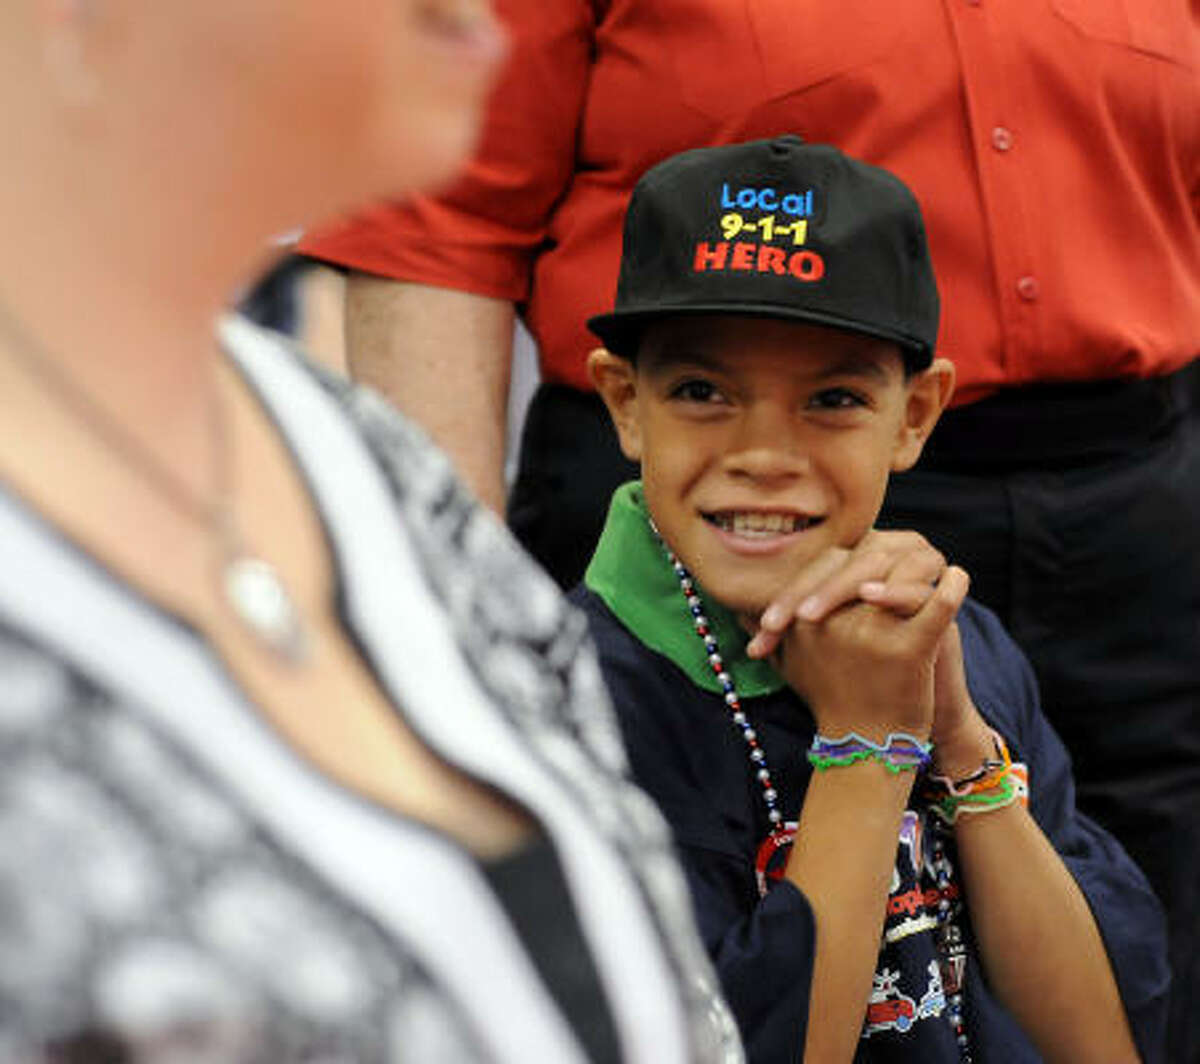 Julio Jimenez, age 8, waits to receive his award during at the local 911 Heroes Ceremony at the George R. Brown Convention Center on Tuesday. On April 16th while his little brother was choking, Jimenez called 911 and followed their instructions until the Cypress-Creek EMS arrived on the scene.